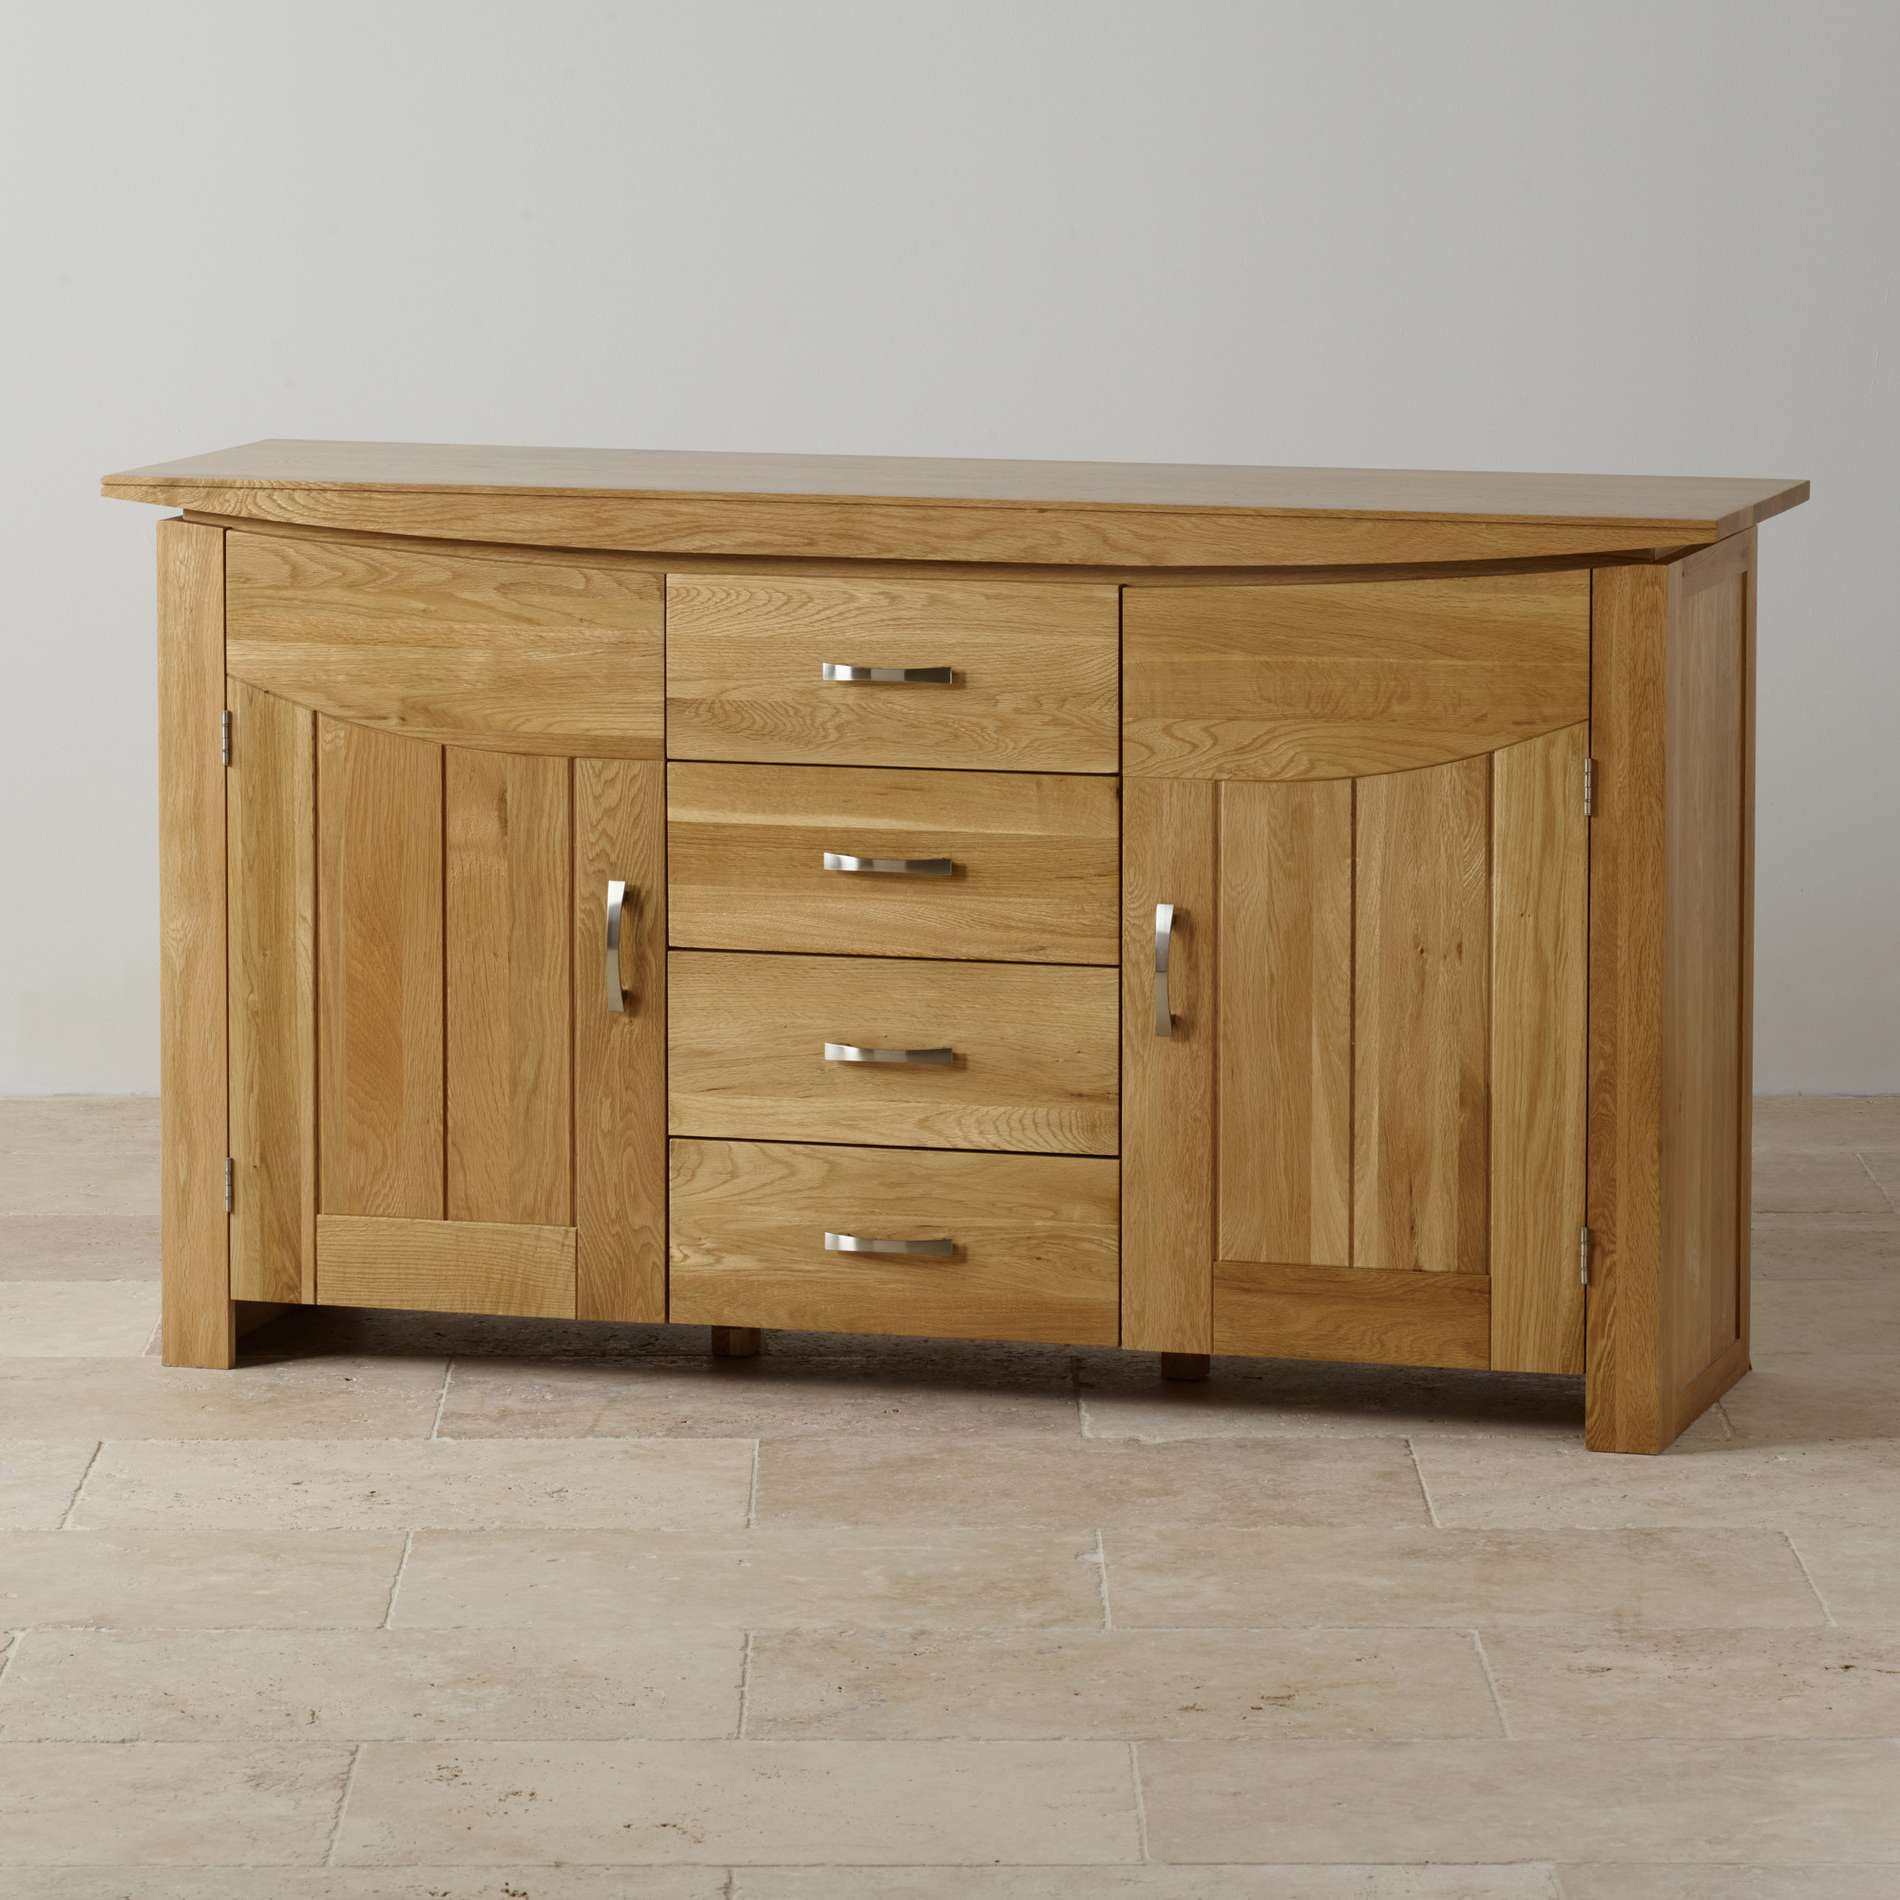 Tokyo Large Sideboard In Natural Solid Oak | Oak Furniture Land Inside Rustic Oak Large Sideboards (View 20 of 20)